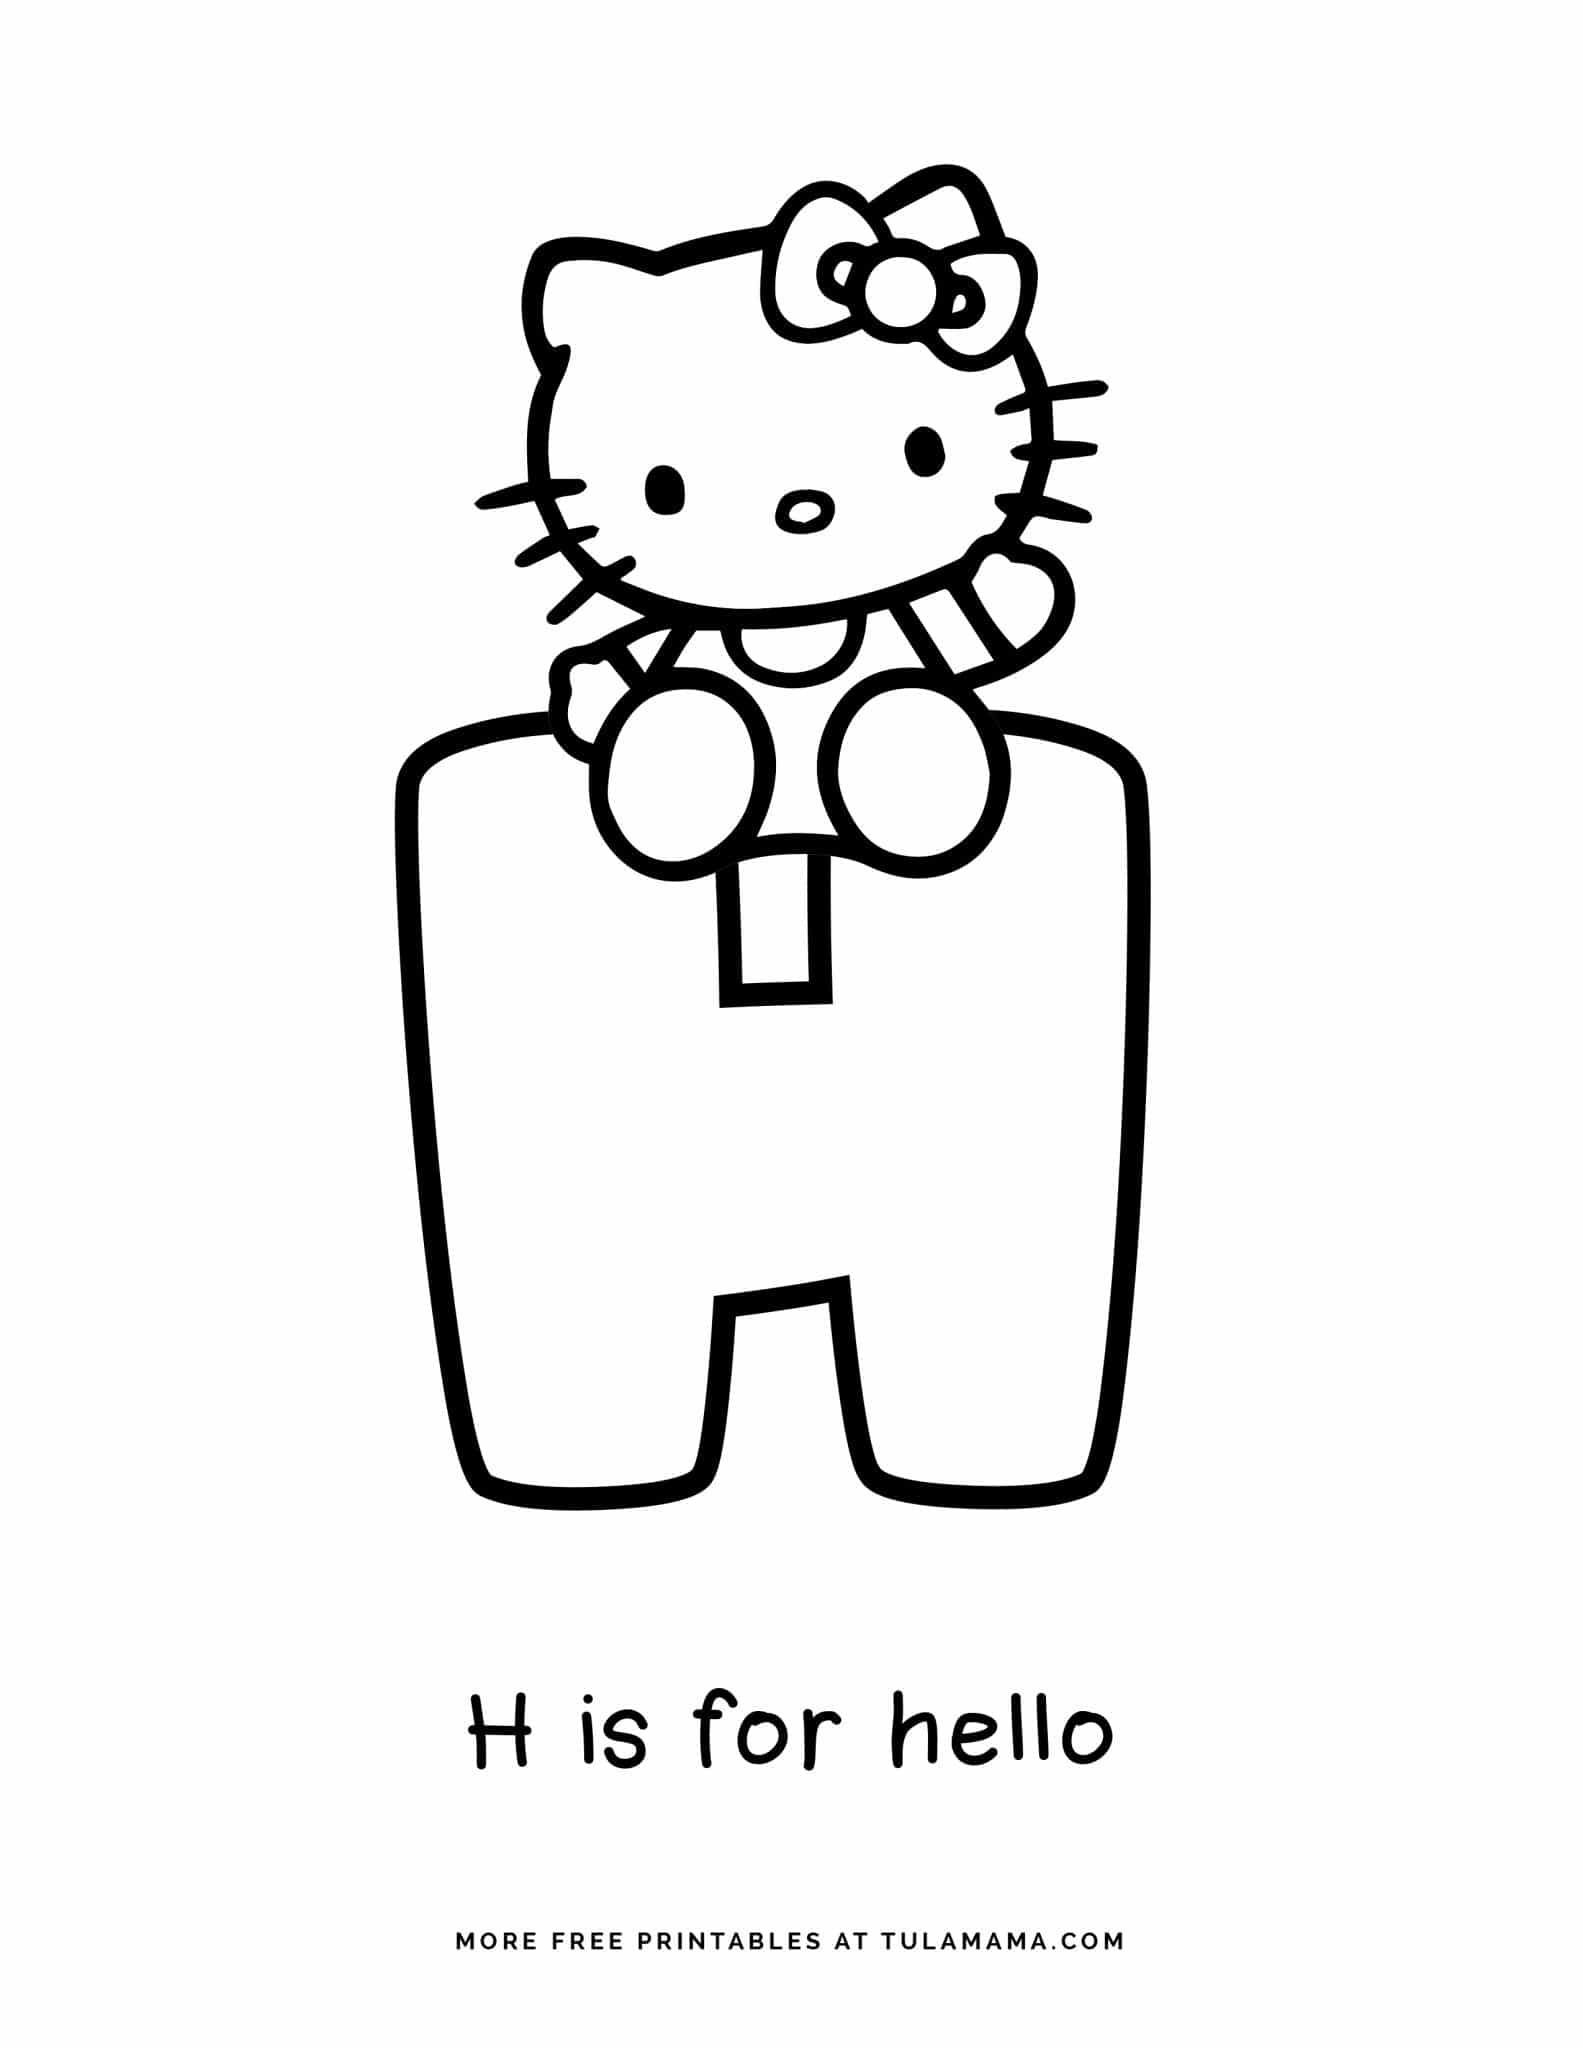 Learning Abc With Hello Kitty Coloring Page For Kids And Adults Hello Kitty Colouring Pages Kitty Coloring Hello Kitty Coloring